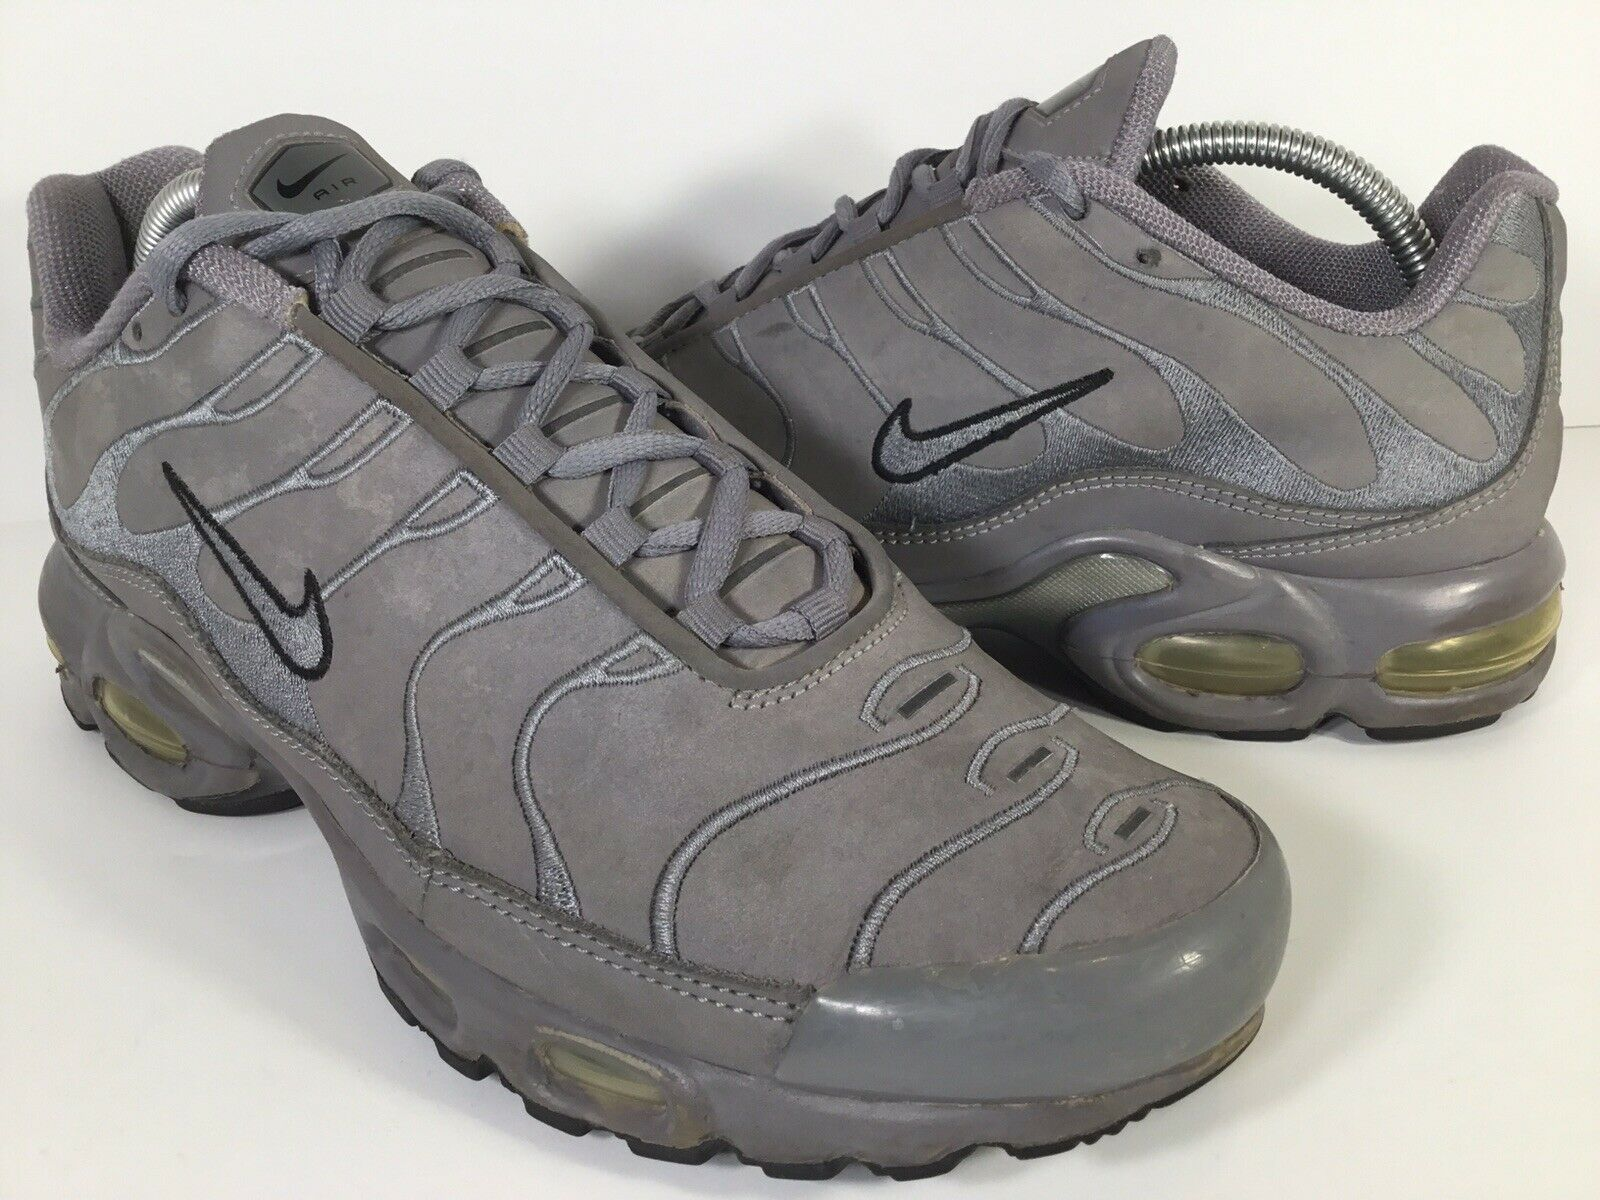 Nike Air Max Plus Tn Leather Cool Grey Black Mens Size 9.5 Rare 310721-003